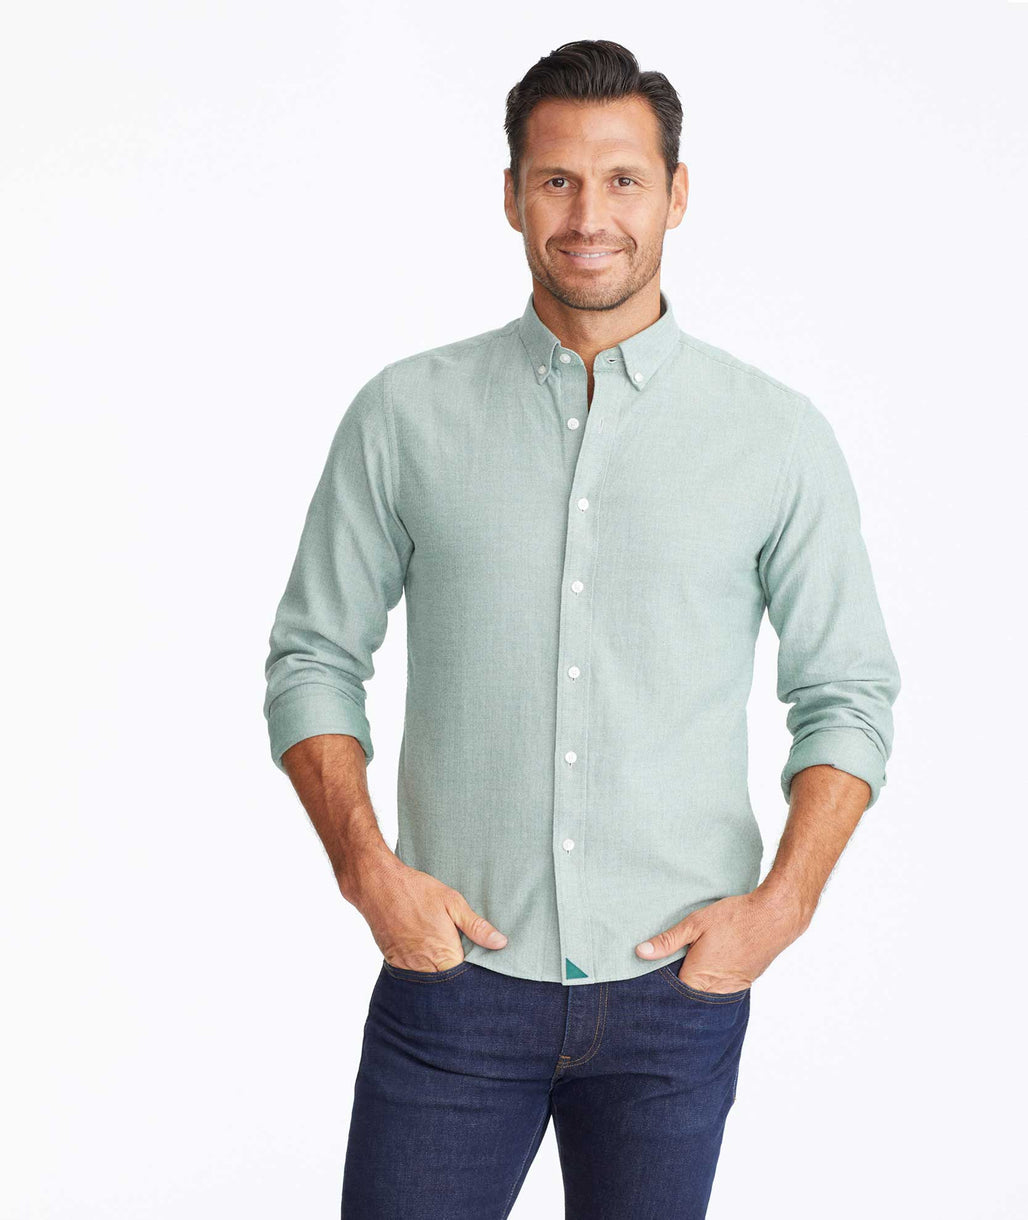 Model wearing a Green Flannel Librando Shirt